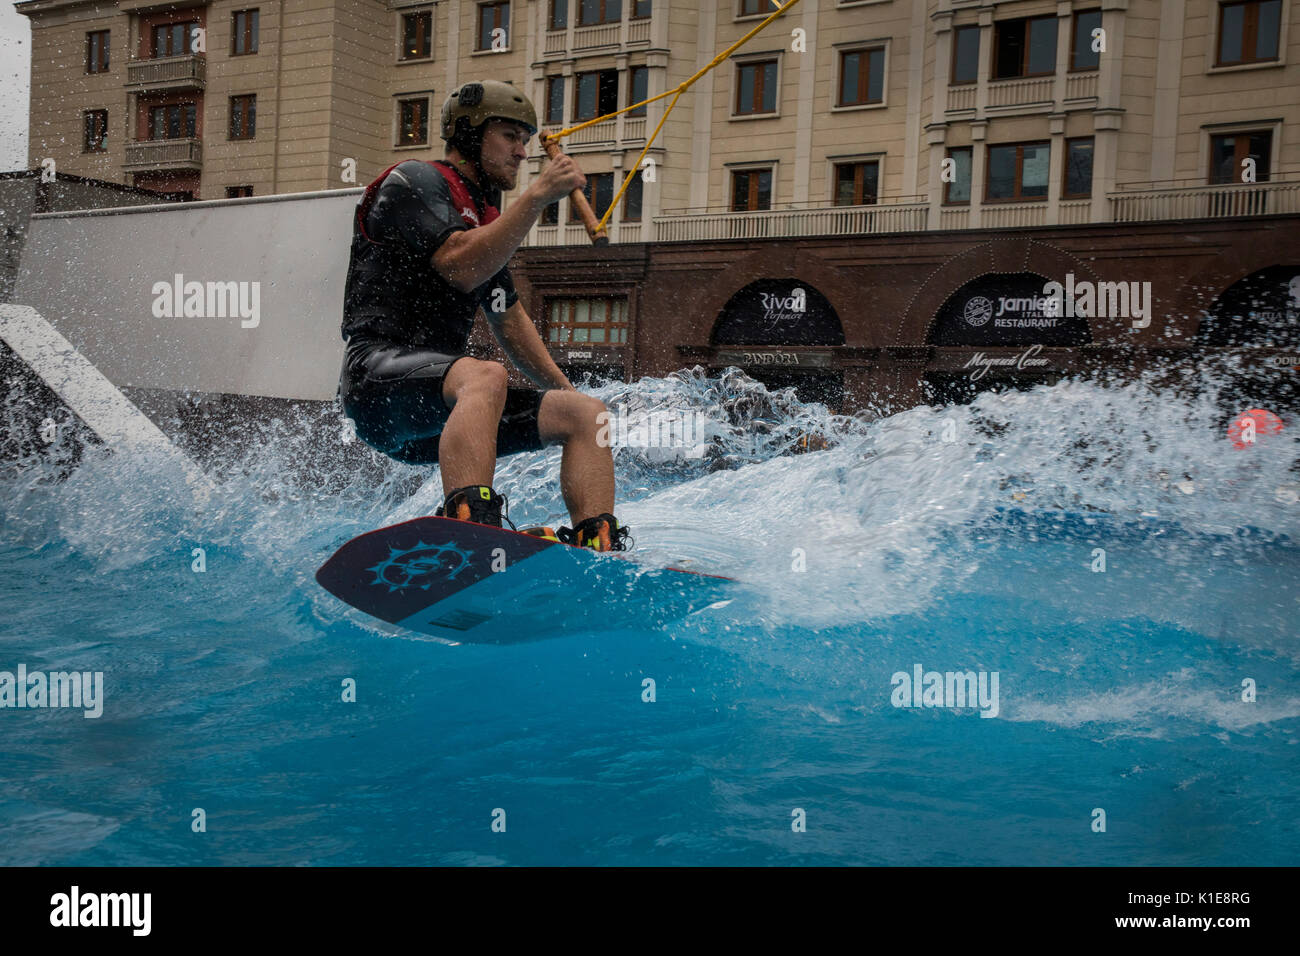 Moscow, Russia. 25th of August, 2017. A wakeboard rider jumps during openin the wake park near the Red square in the center of Moscow, Russia Credit: Nikolay Vinokurov/Alamy Live News - Stock Image